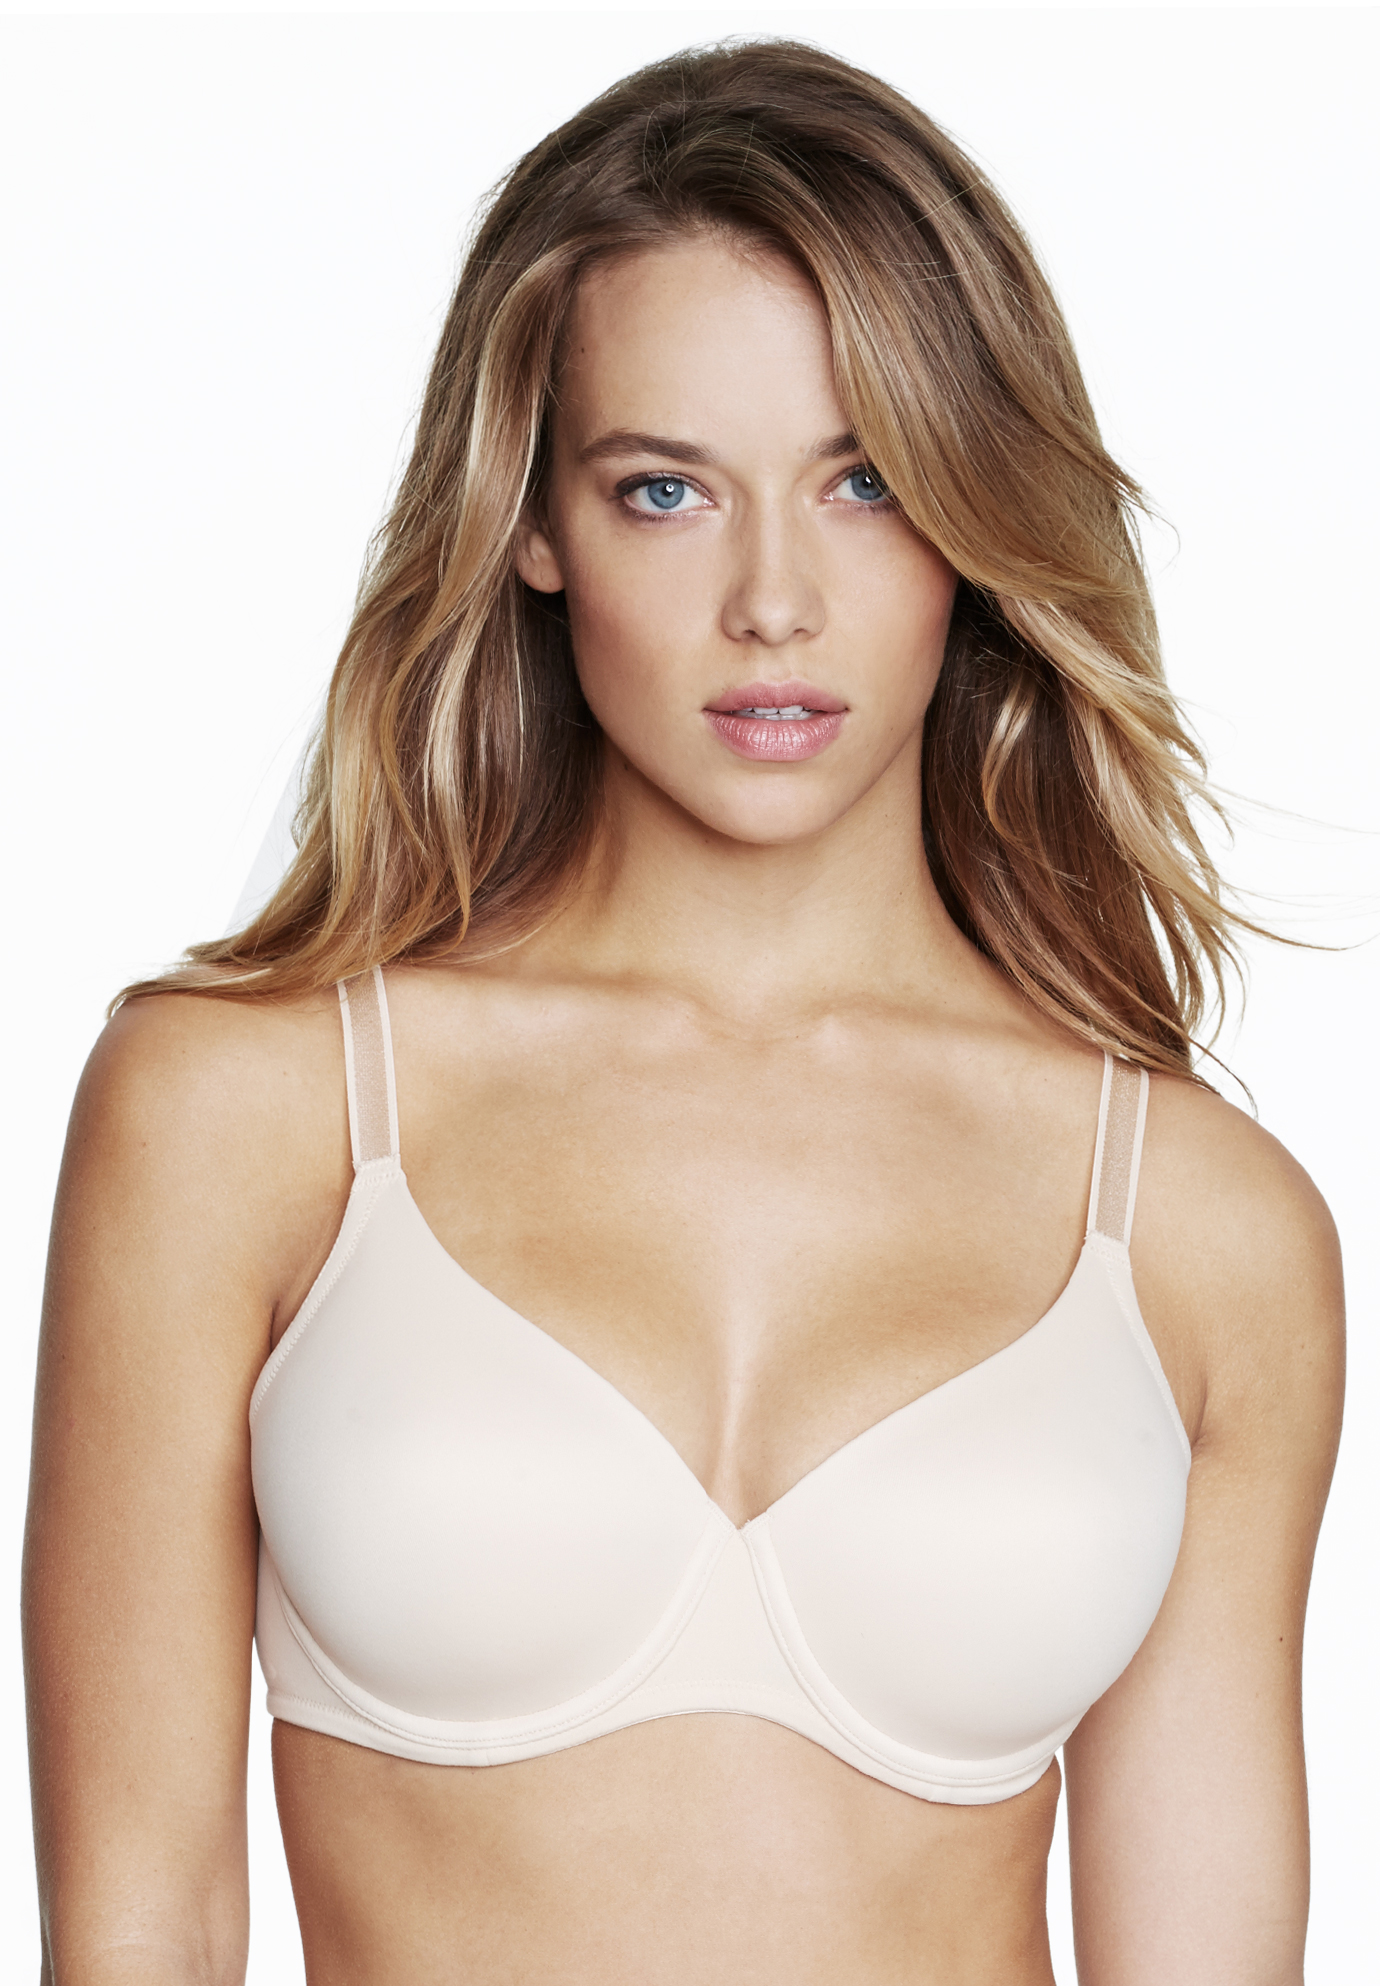 Dominique™ Aimee T-shirt Bra,